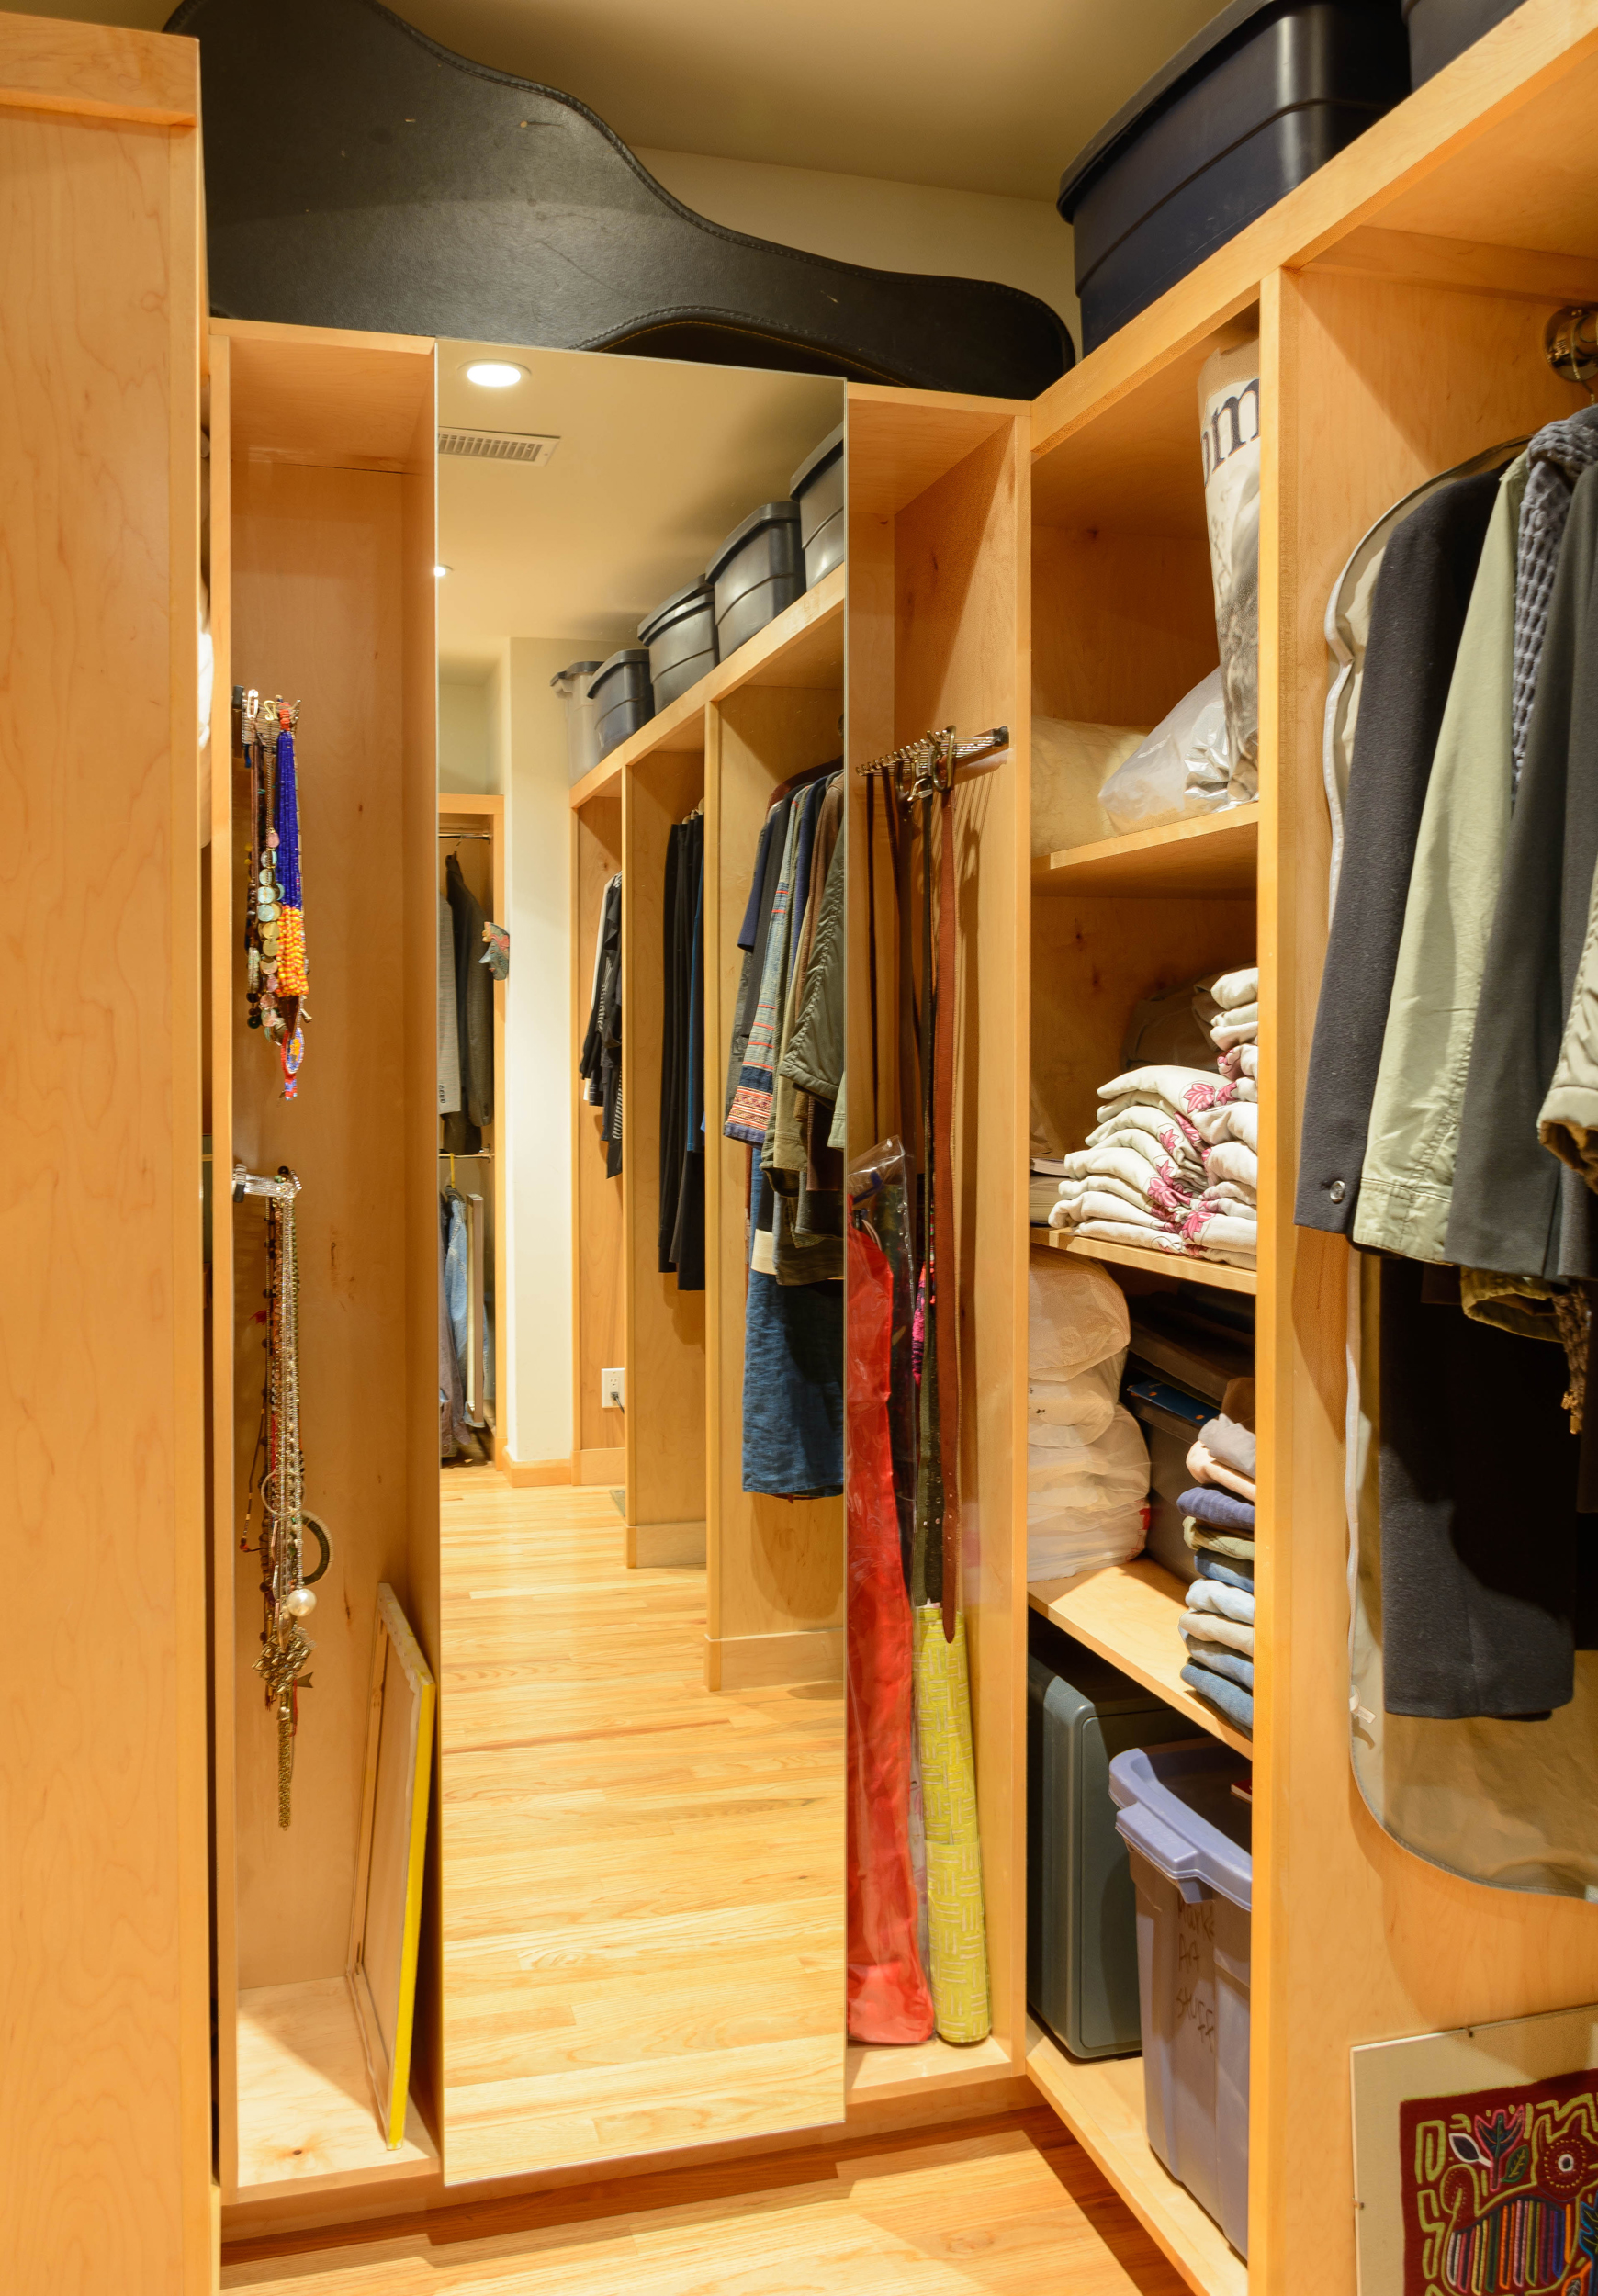 Ample space for hanging clothes as well as folded